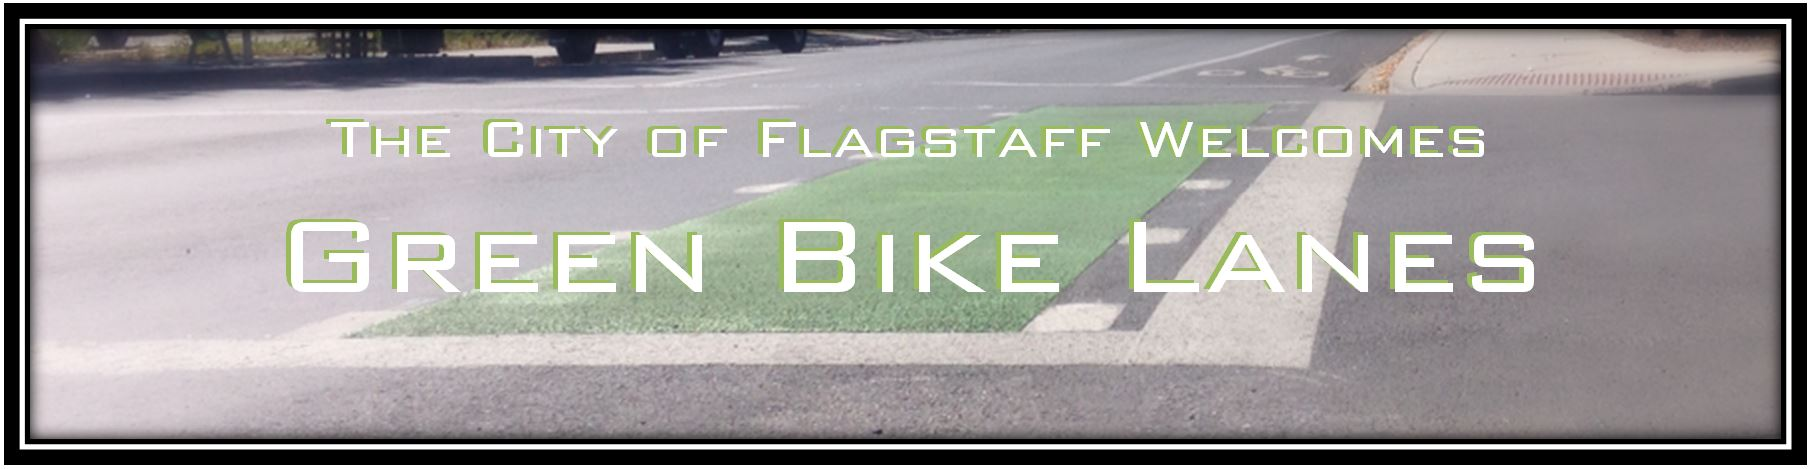 Flagstaff Welcomes Green Bike Lanes